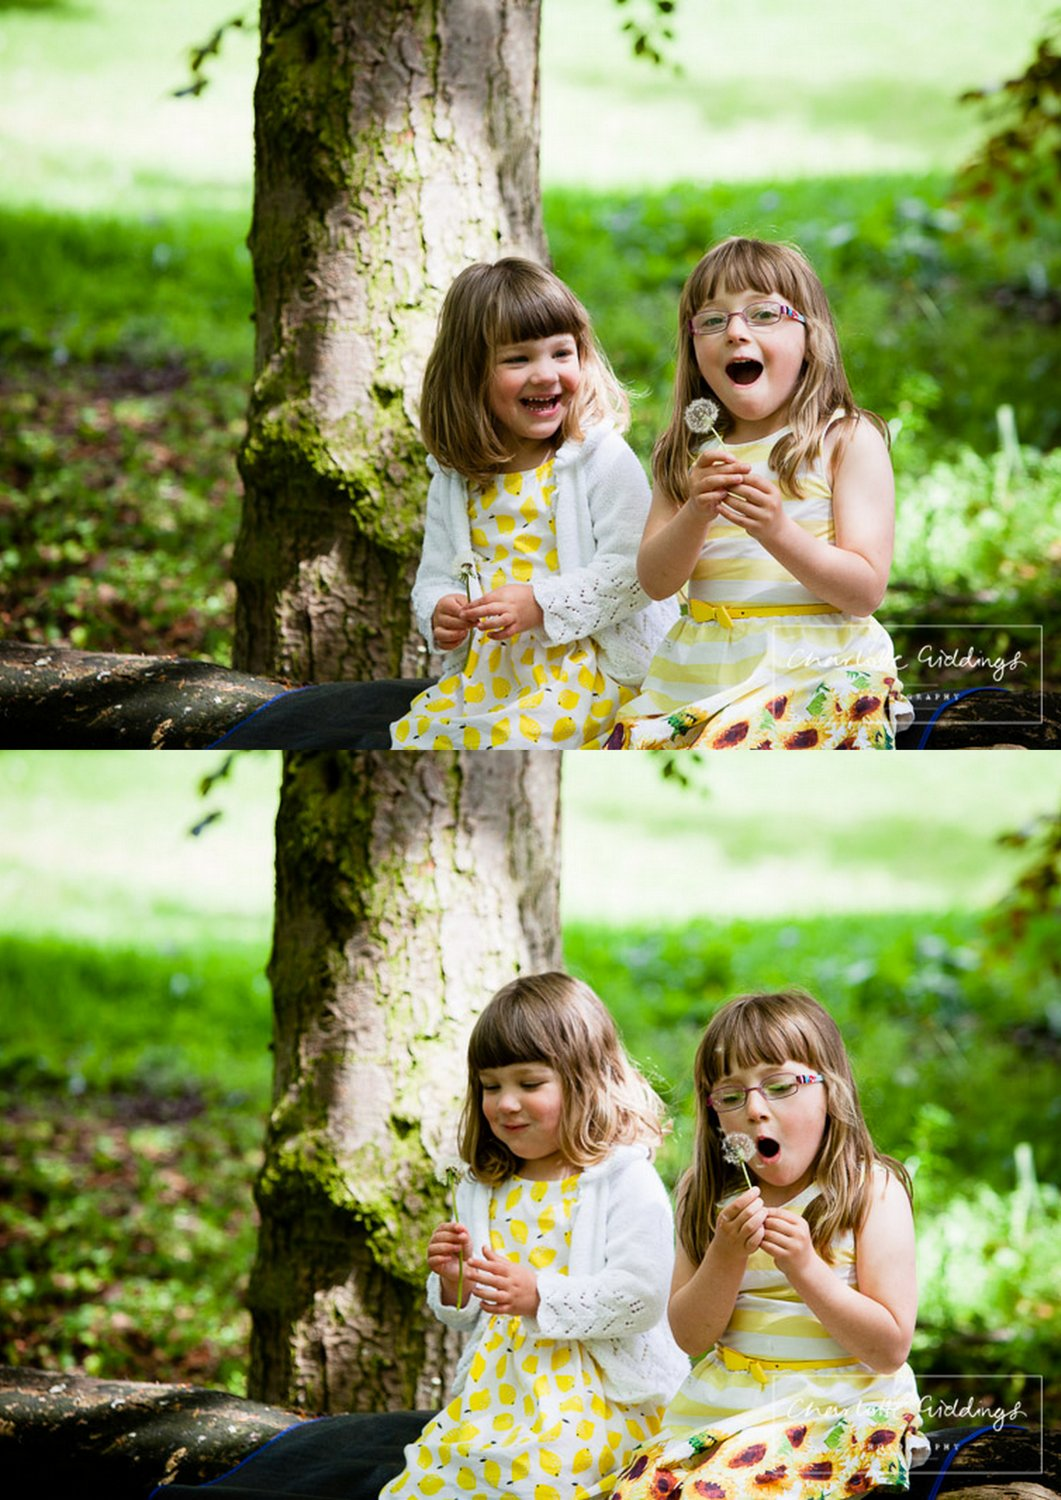 two sisters sat on a log blowing dandelion seeds giggling - shropshire portrait photographer